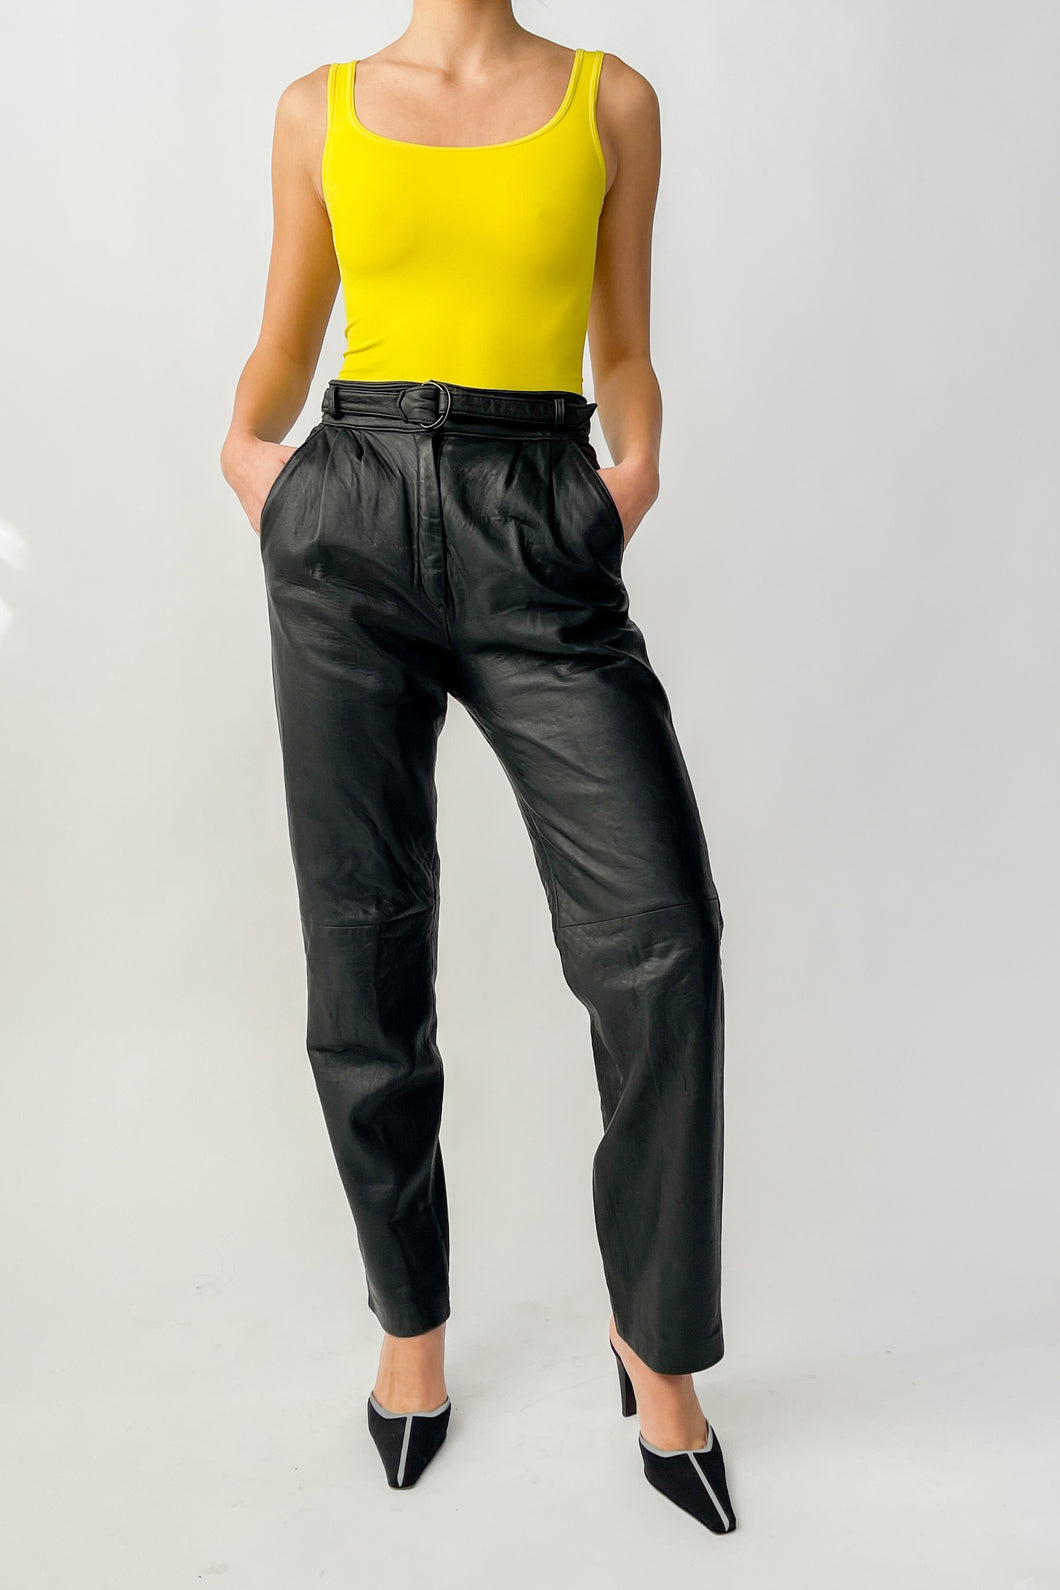 Black Leather Belted Pants (S)